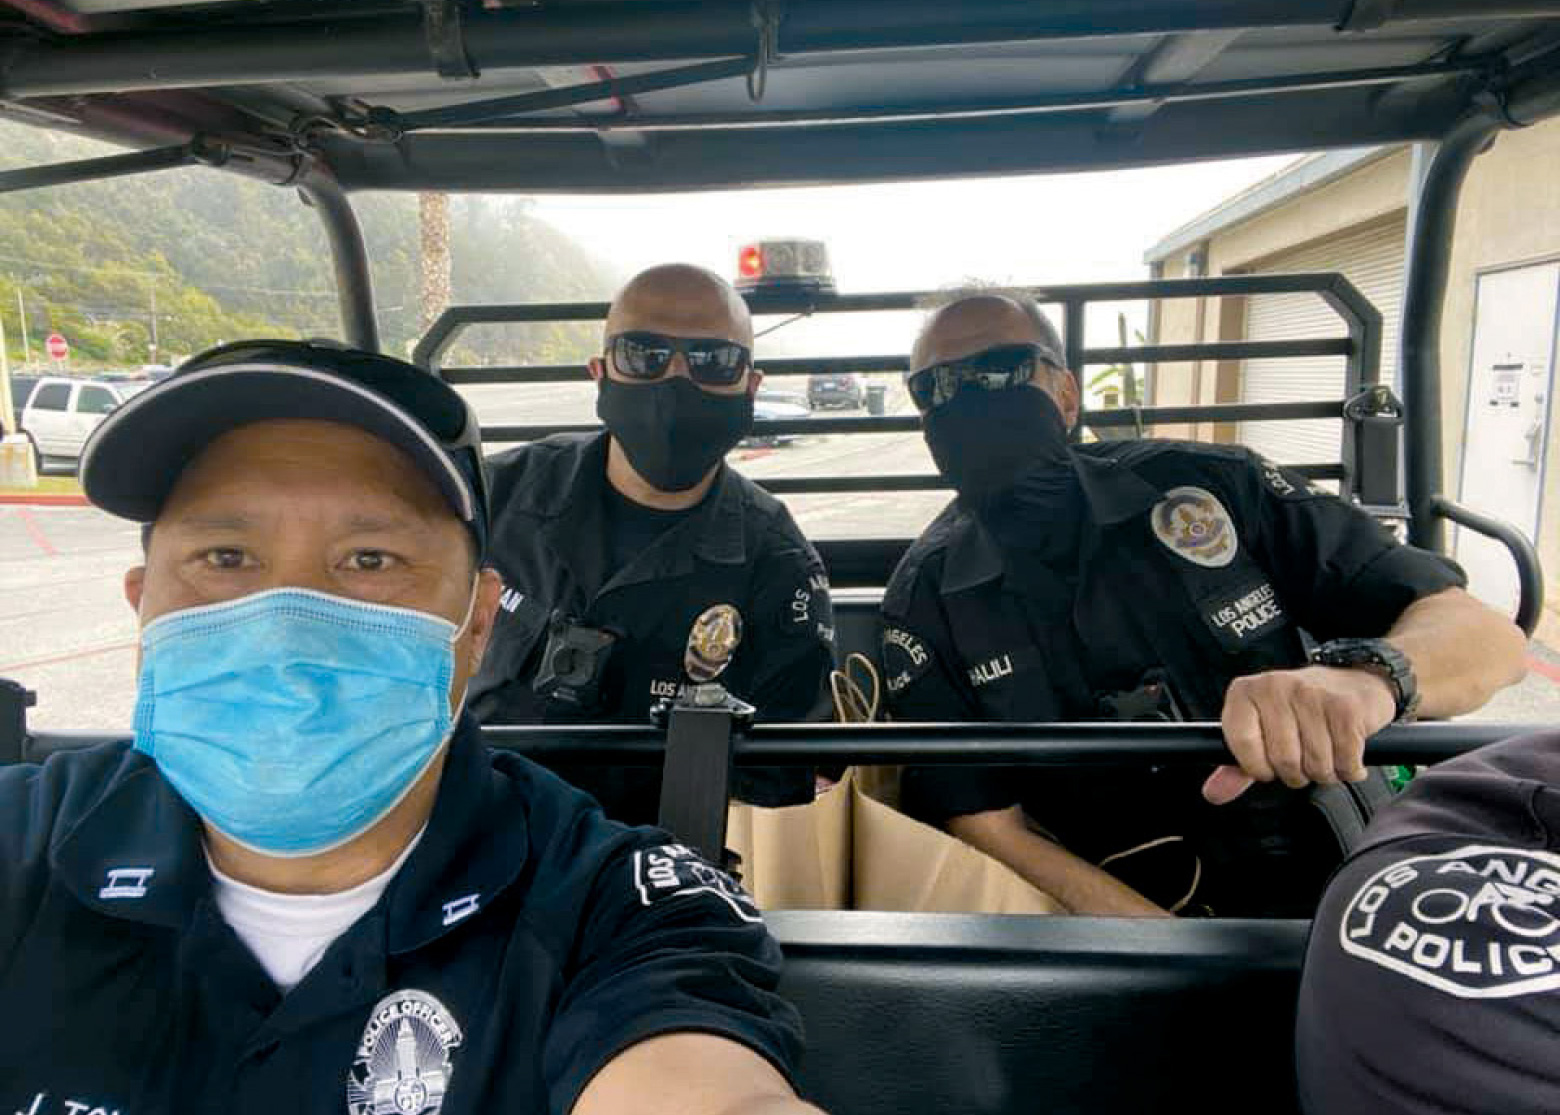 lapd-reserves-go-above-and-beyond-during-covid-19-25-captain-jonathan-tom-west-los-angeles-area-thanks-reserve-police-officers-bernard-khalili-and-george-alwan-will-rogers-state-beach